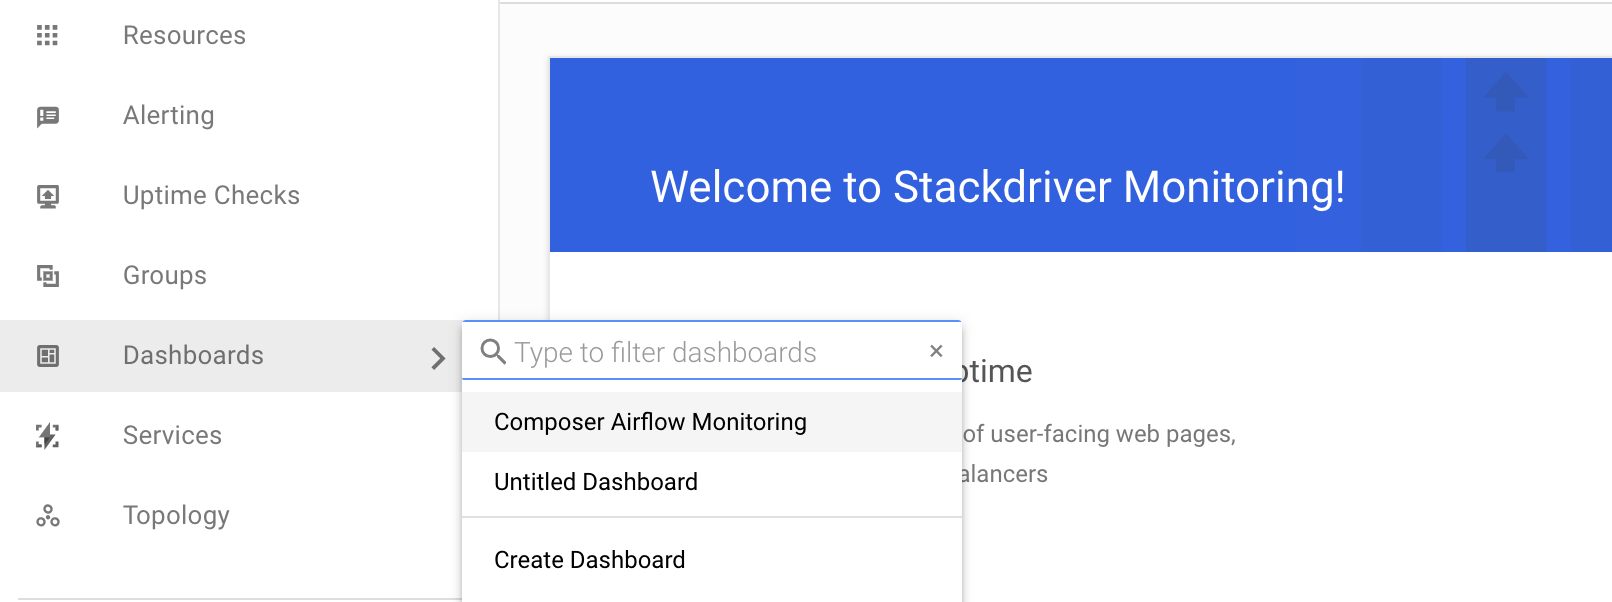 Monitoring environments in Stackdriver | Cloud Composer